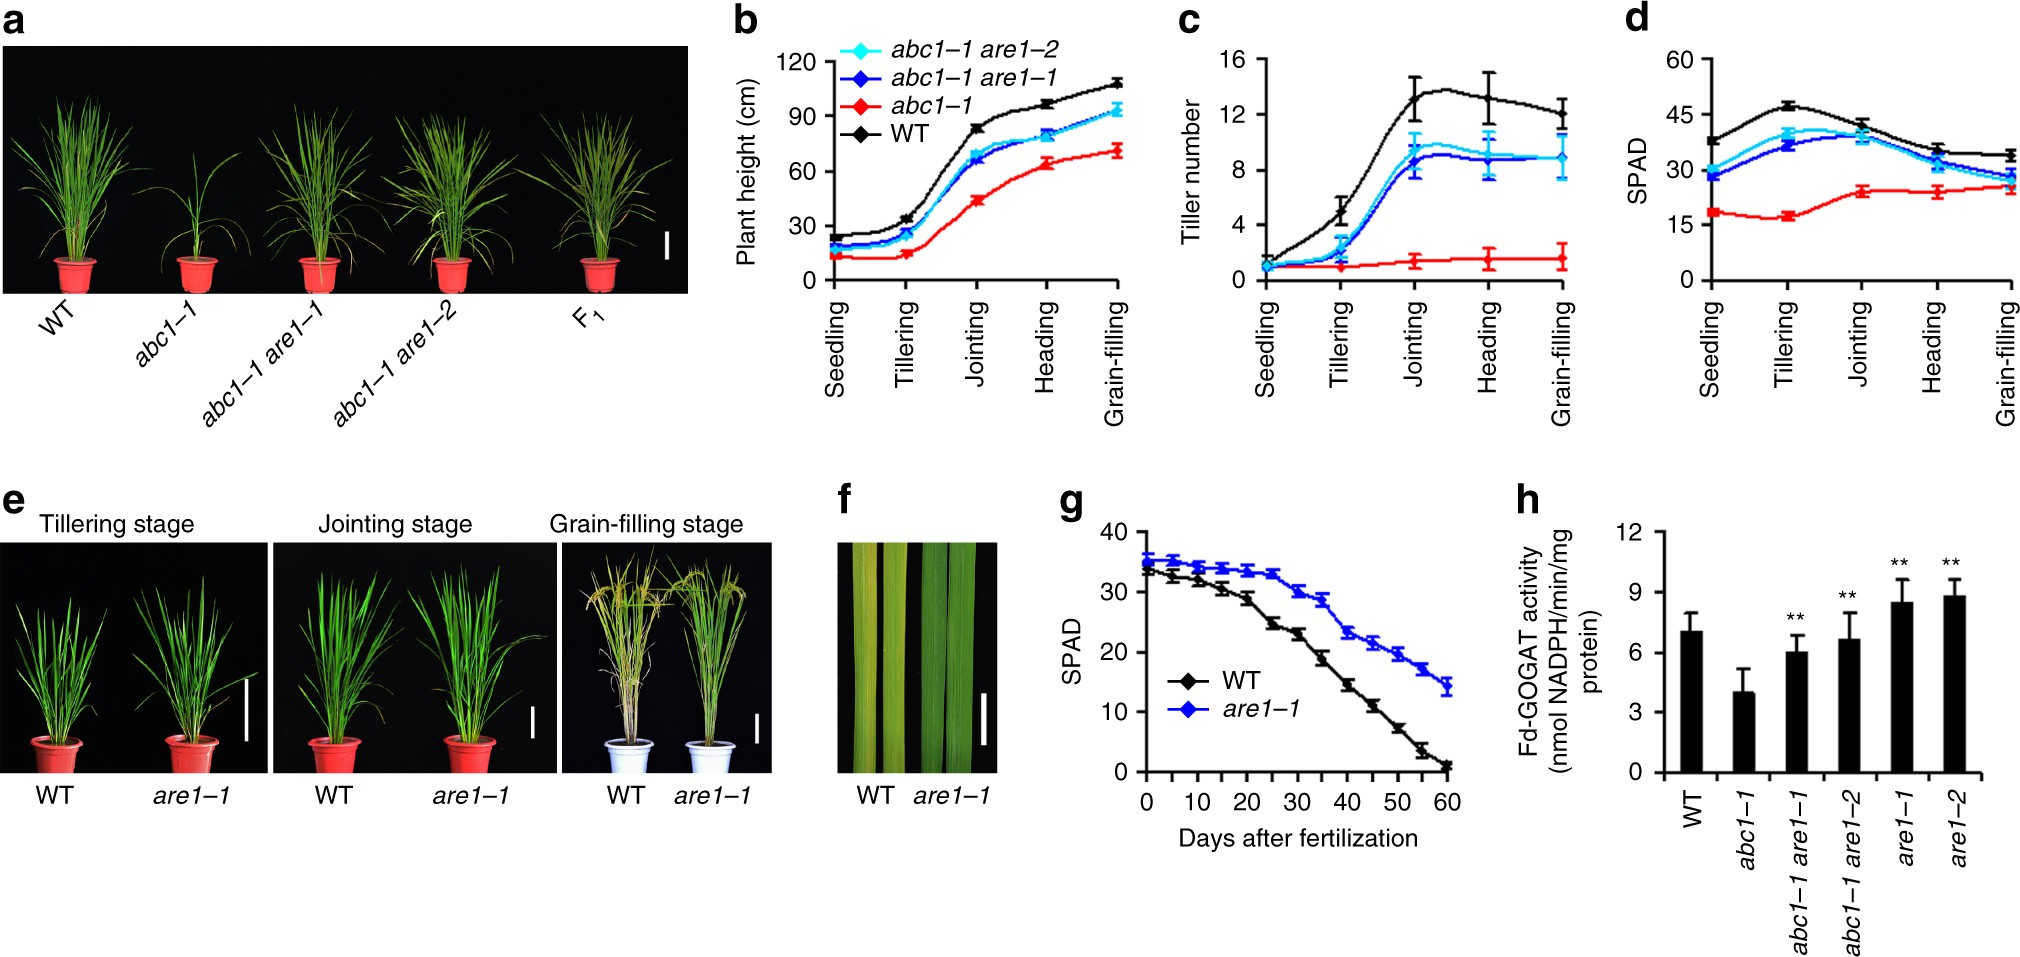 Genetic Variations In Are1 Mediate Grain Yield By Modulating Pure Green Organic Rice Long 1 Kg Nitrogen Utilization Nature Communications